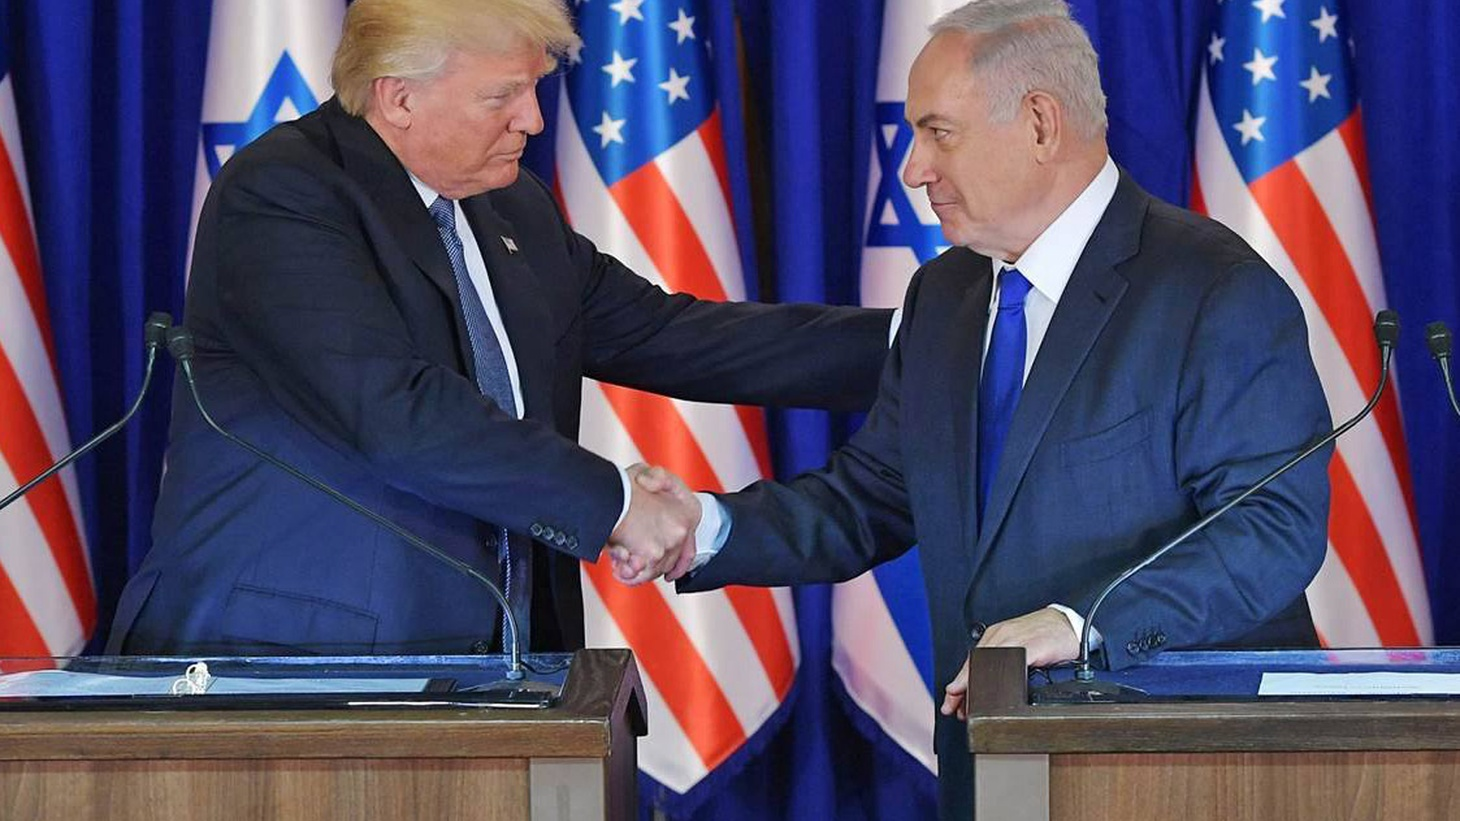 """On his first foreign tour, President Trump has promised """"peace"""" between Israel and the Palestinians. Are there any details for re-starting talks that have been stalled for the past three years?"""